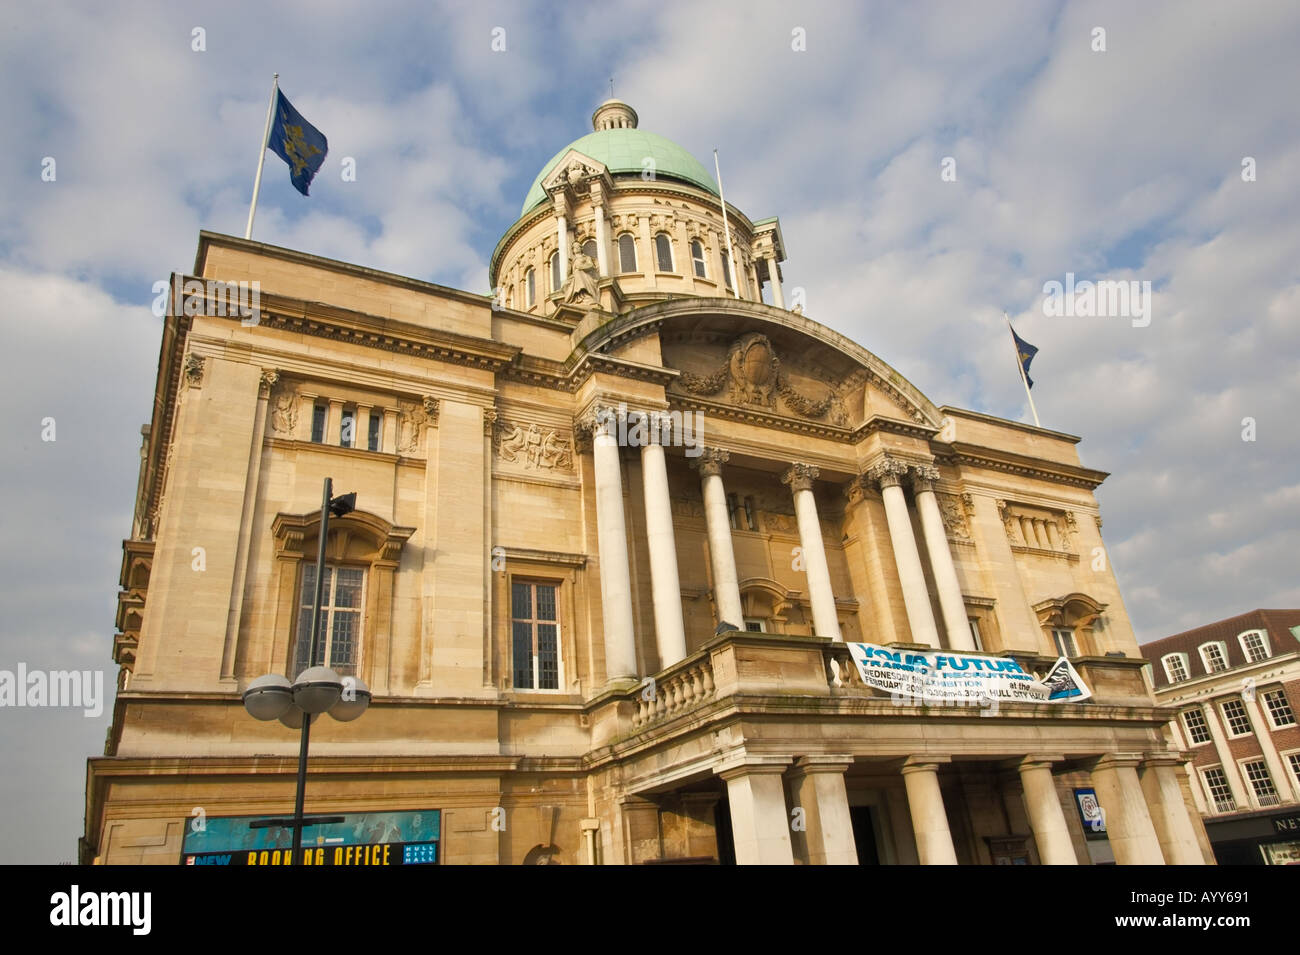 City Hall Victoria Square Hull East Yorkshire England UK - Stock Image